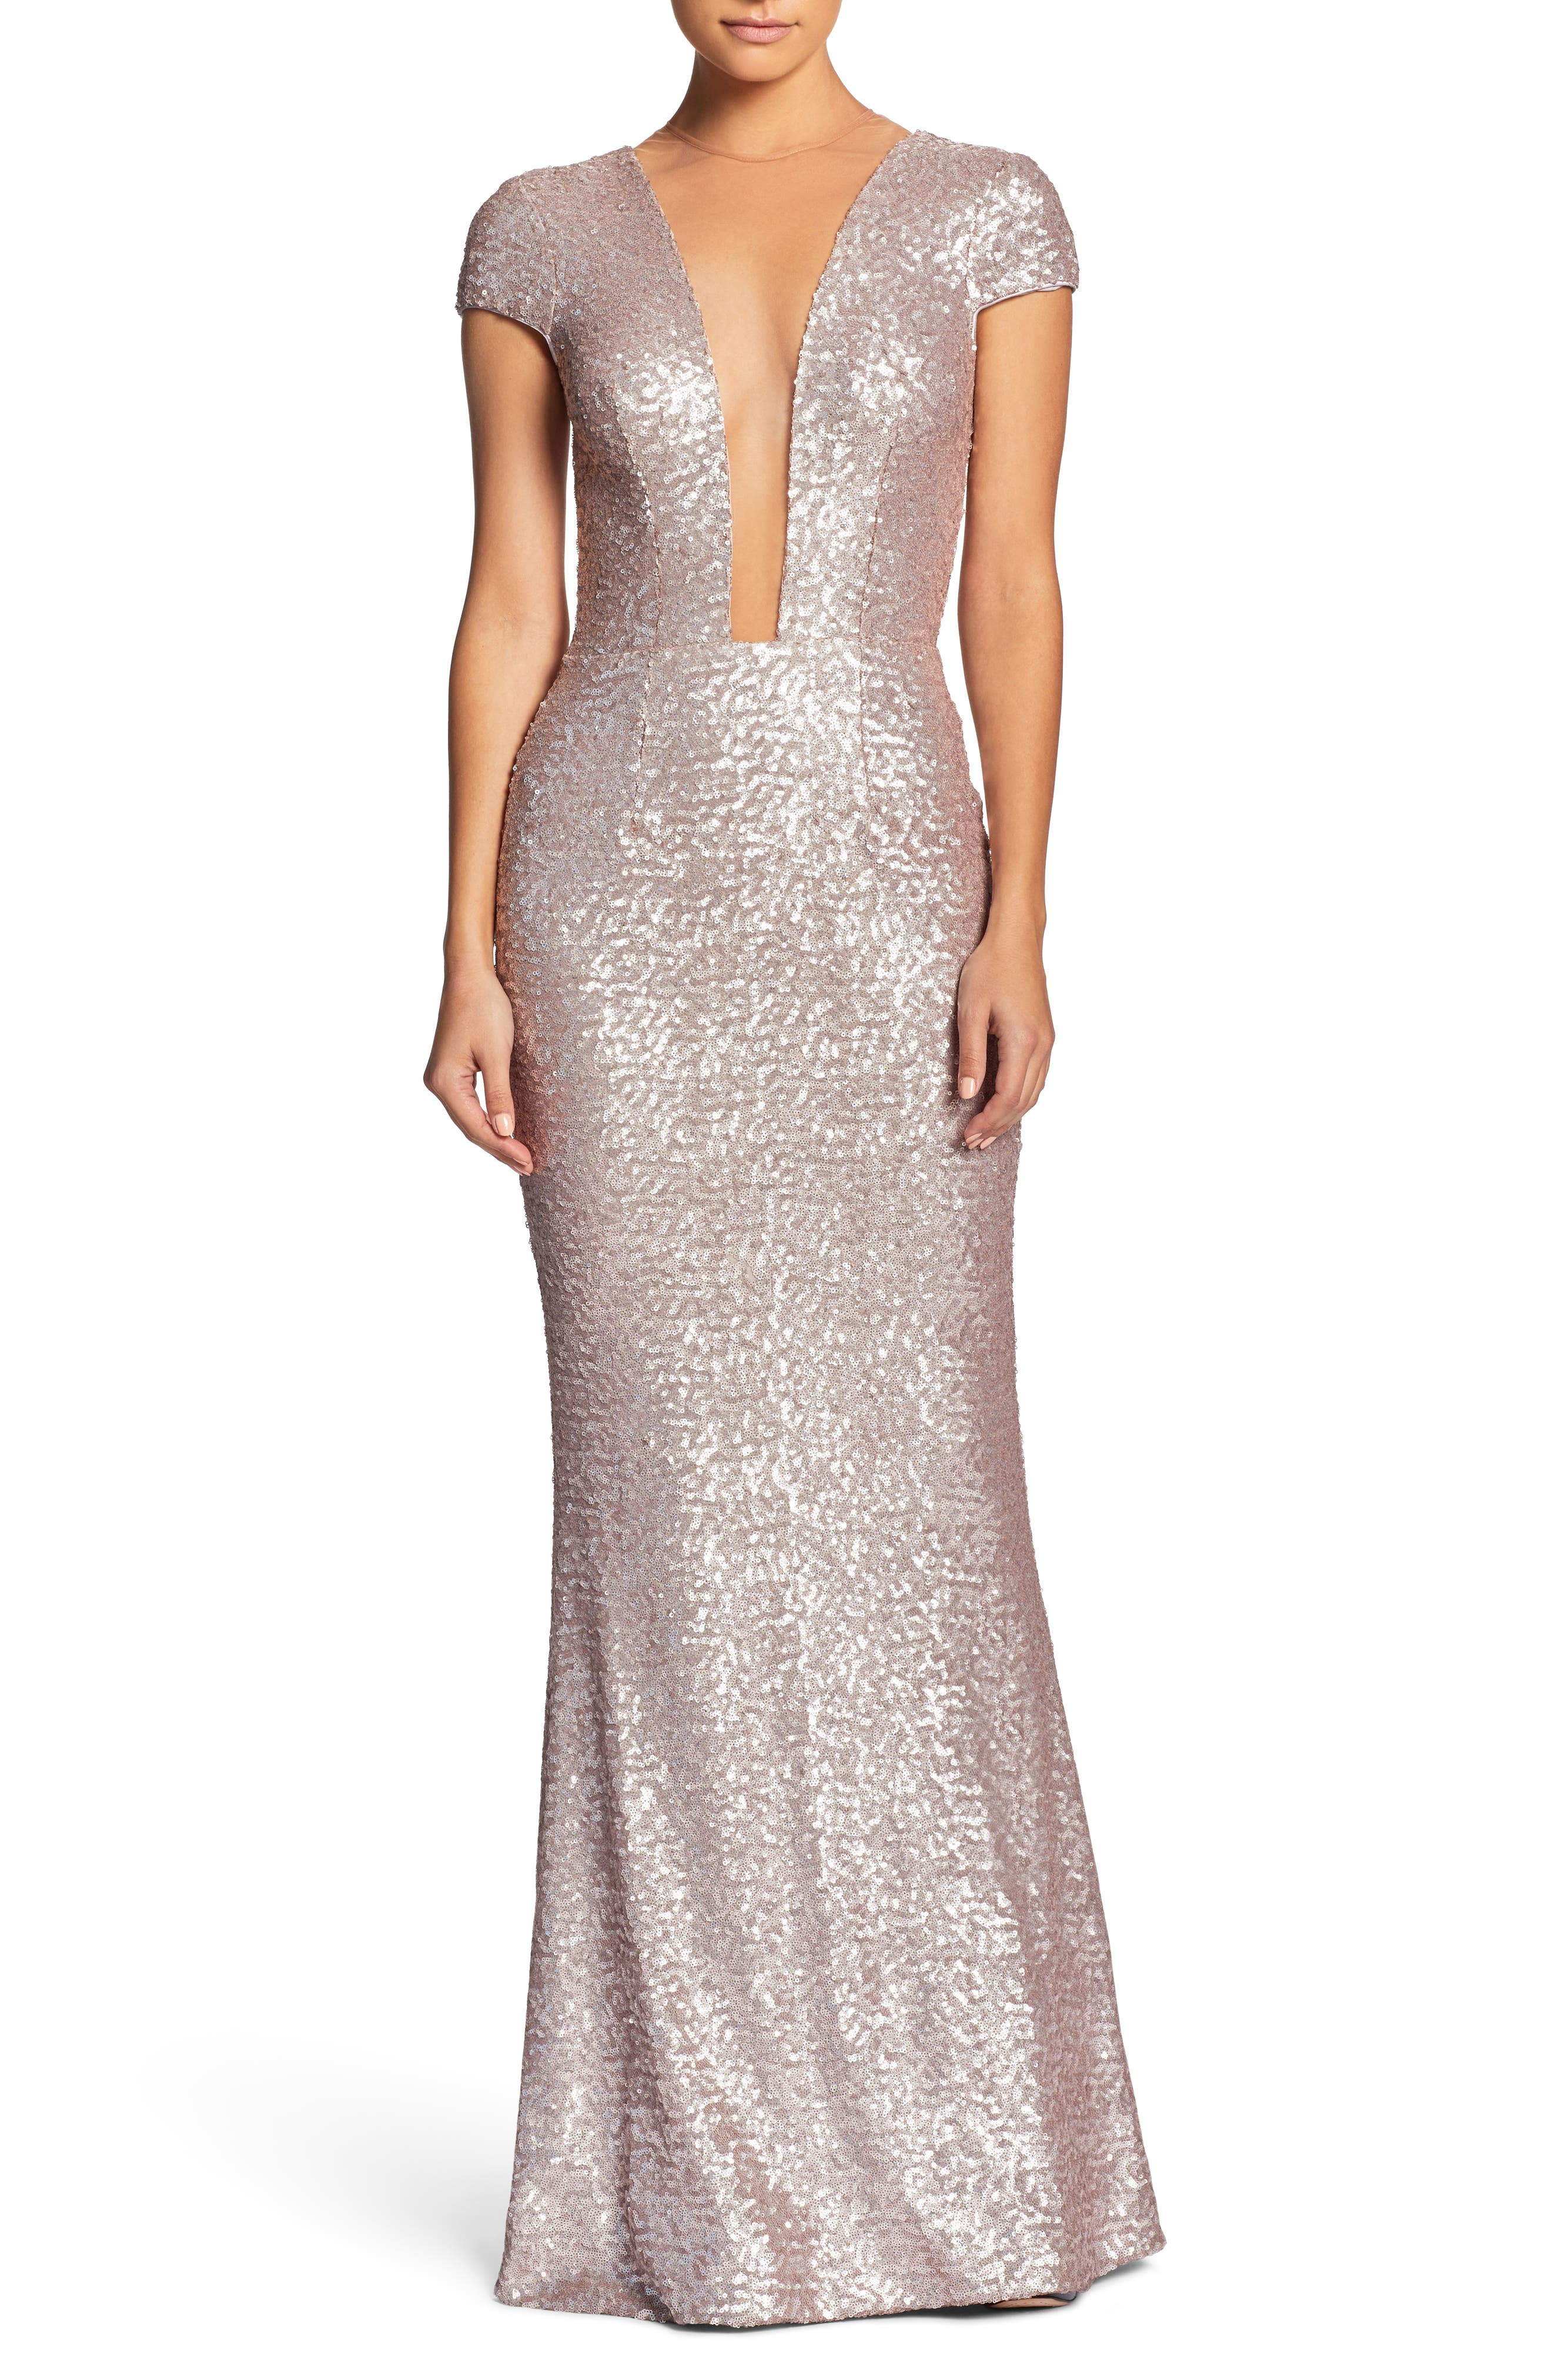 Alternate Image 1 Selected - Dress the Population Michelle Sequin Gown (Nordstrom Exclusive)